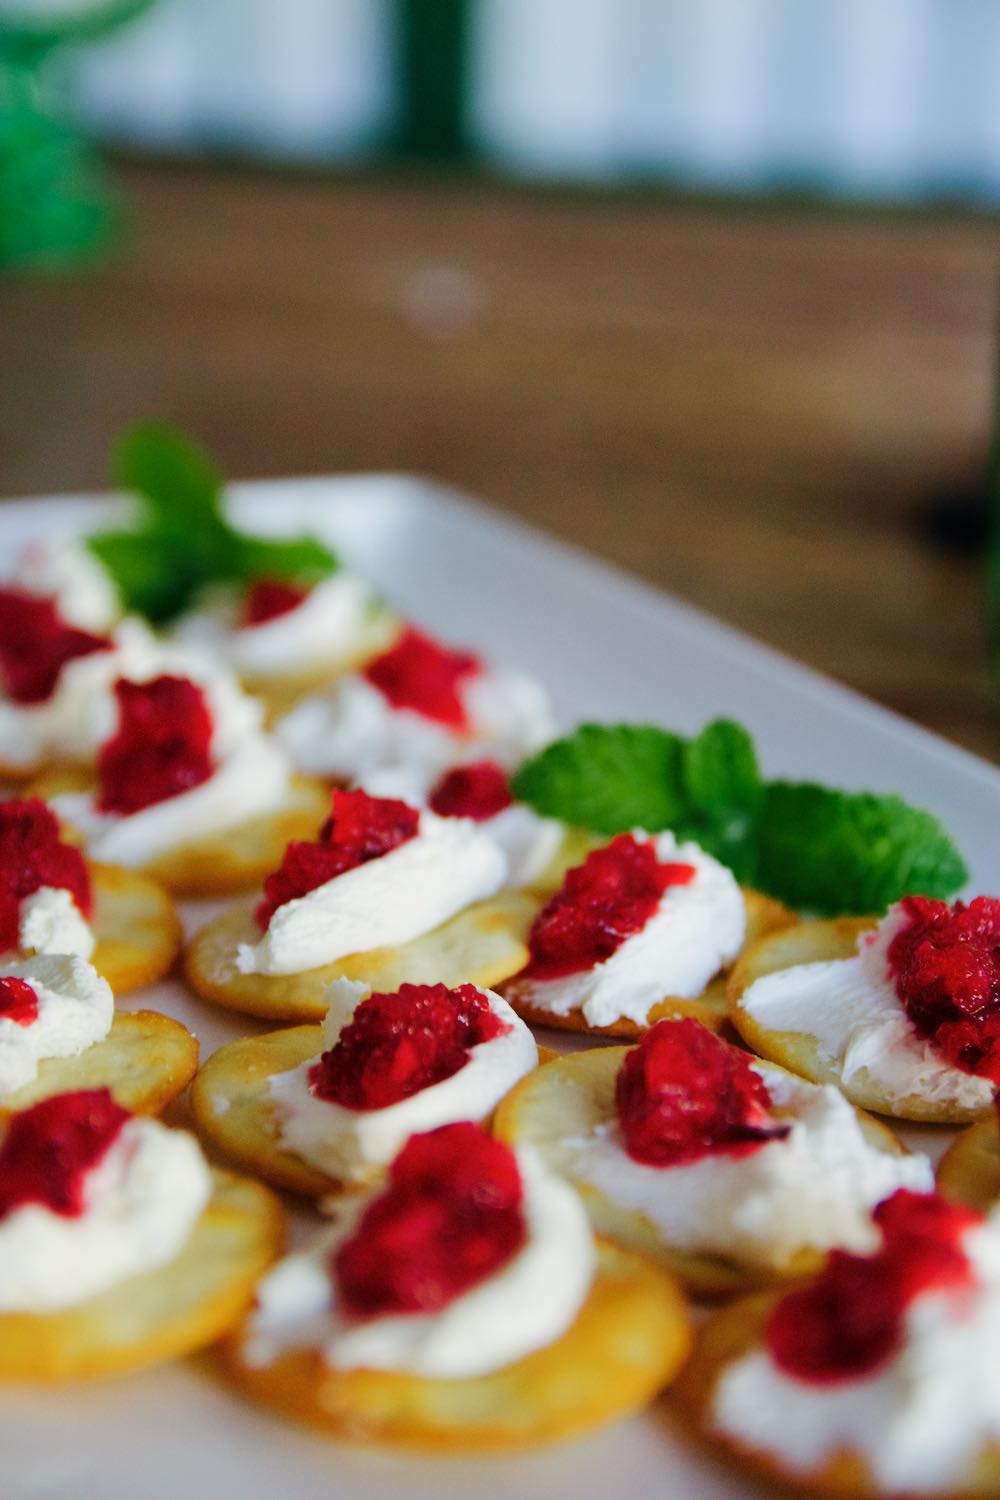 cranberry orange cream cheese crackers as an hors d'oeuvre